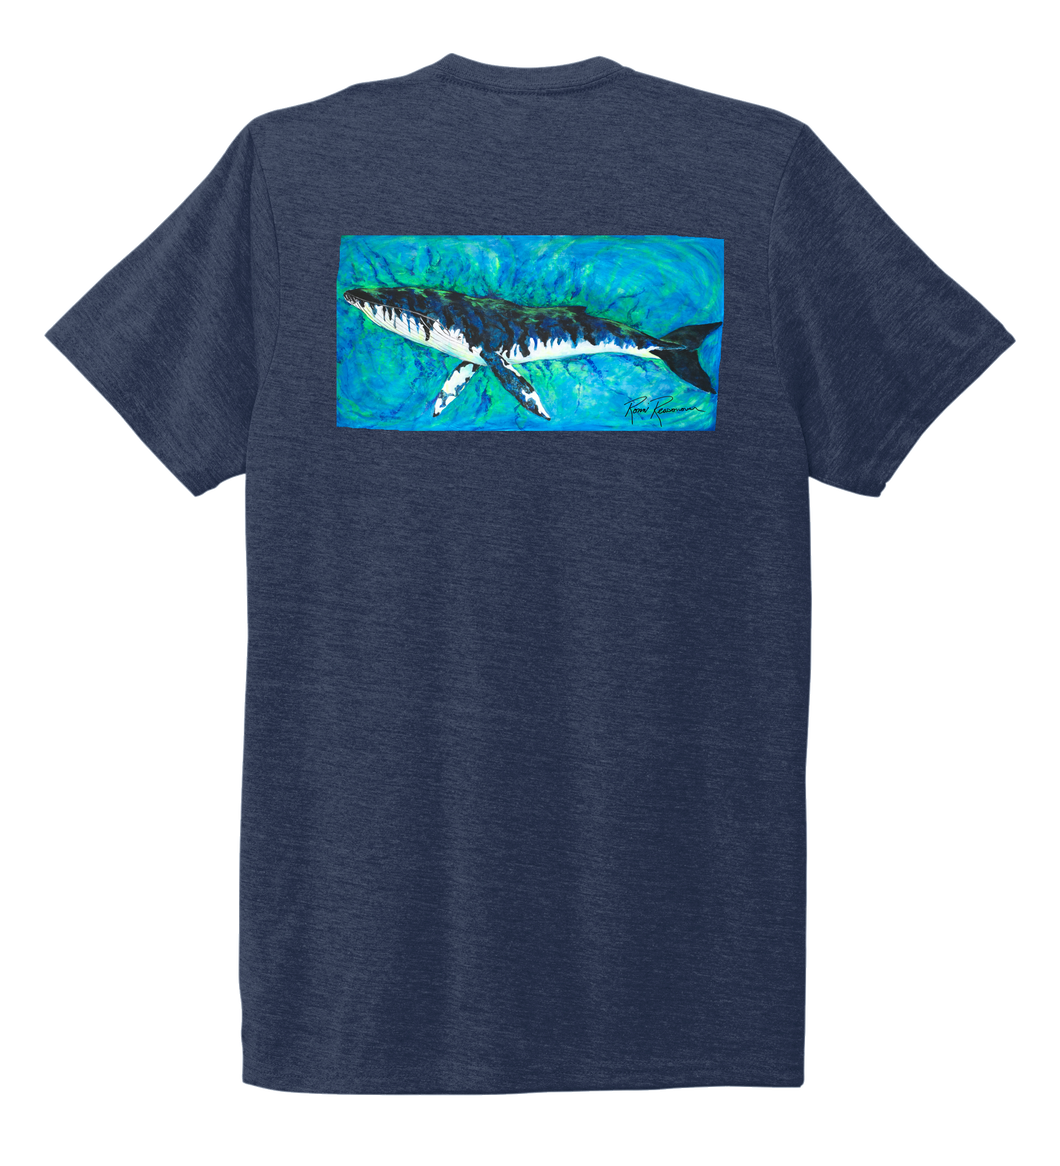 Ronnie Reasonover, The Whale, Crew Neck T-Shirt in Deep Sea Blue